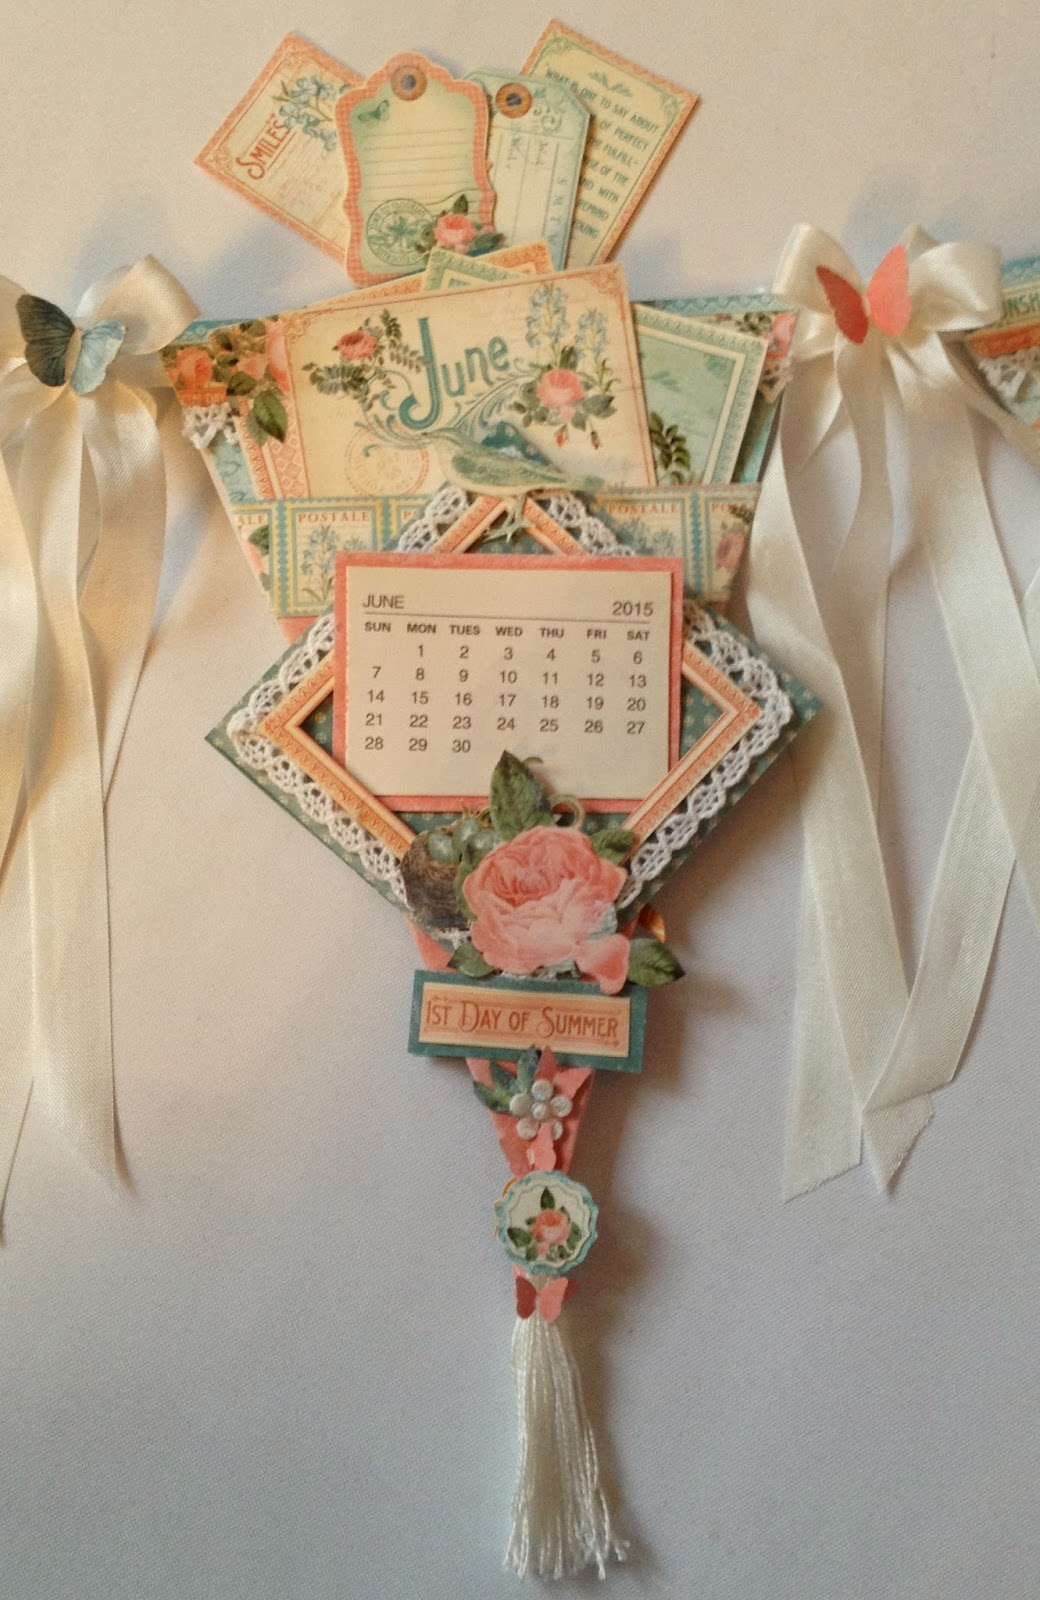 Annes Papercreations How To Make The Time To Flourish Banner Mini